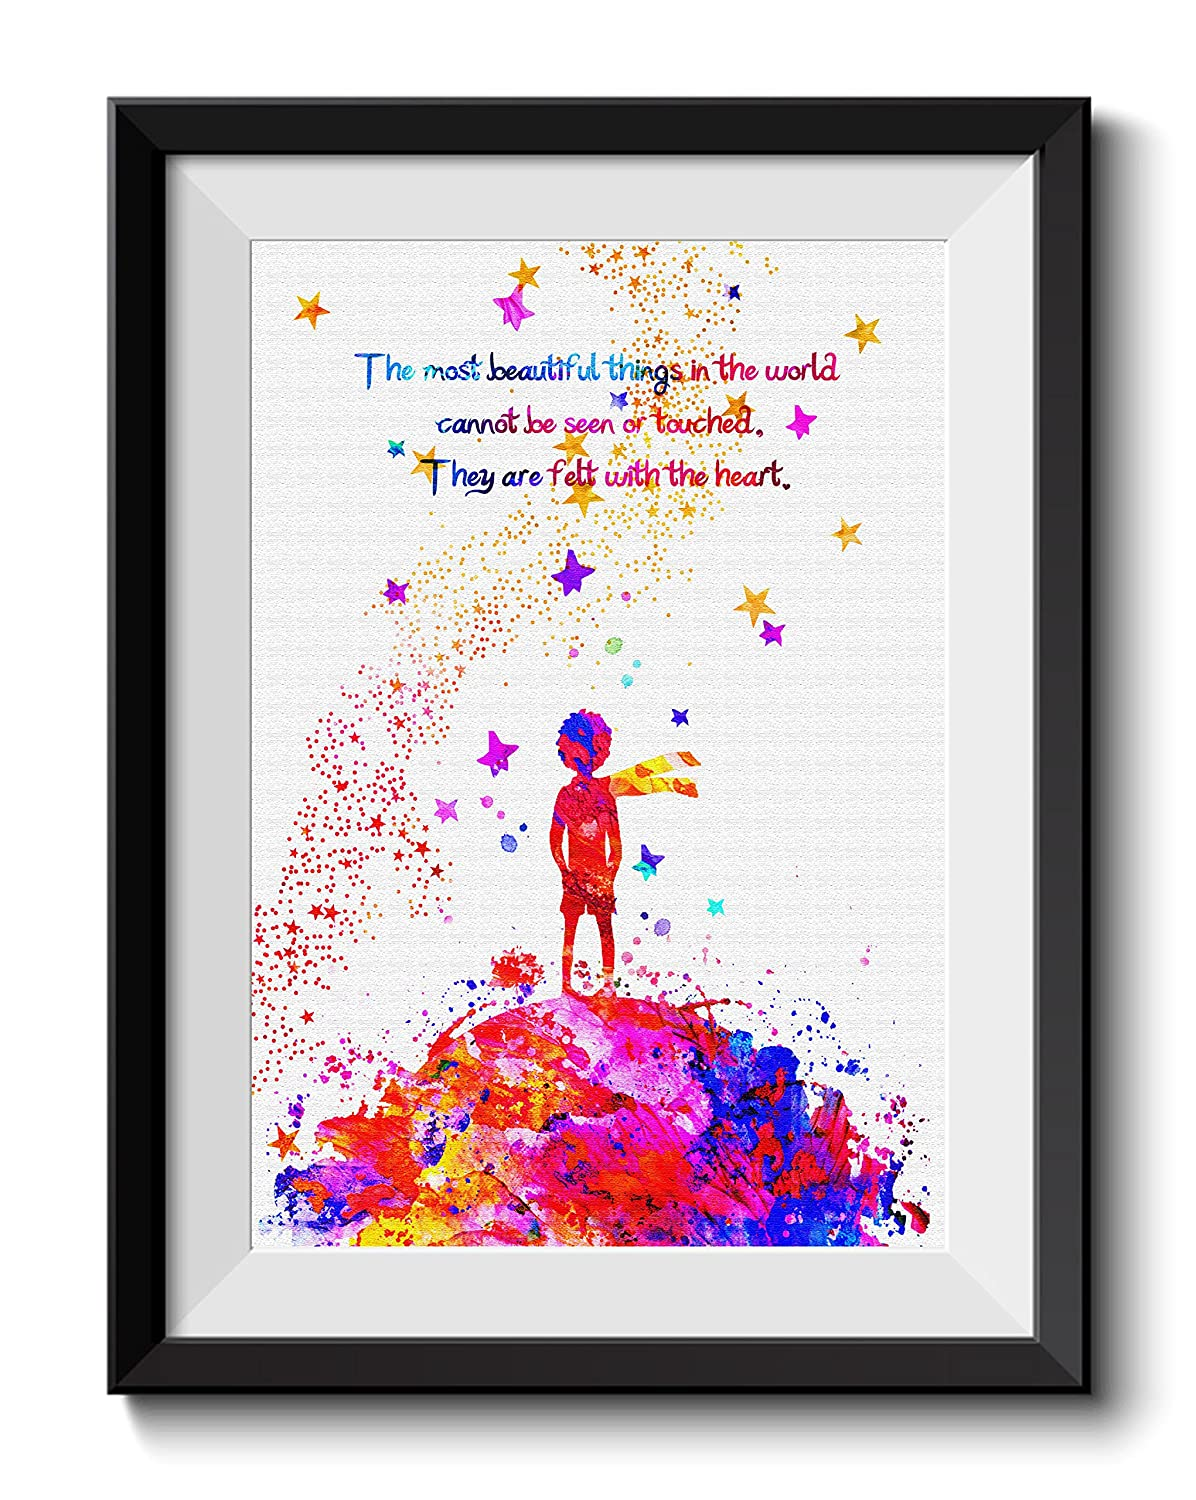 Uhomate The Little Prince Fox Le Petit Prince Little Prince Home Canvas Prints Wall Art Anniversary Gifts Baby Gift Inspirational Quotes Wall Decor Living Room Bedroom Bathroom Art C045 8X10 inch